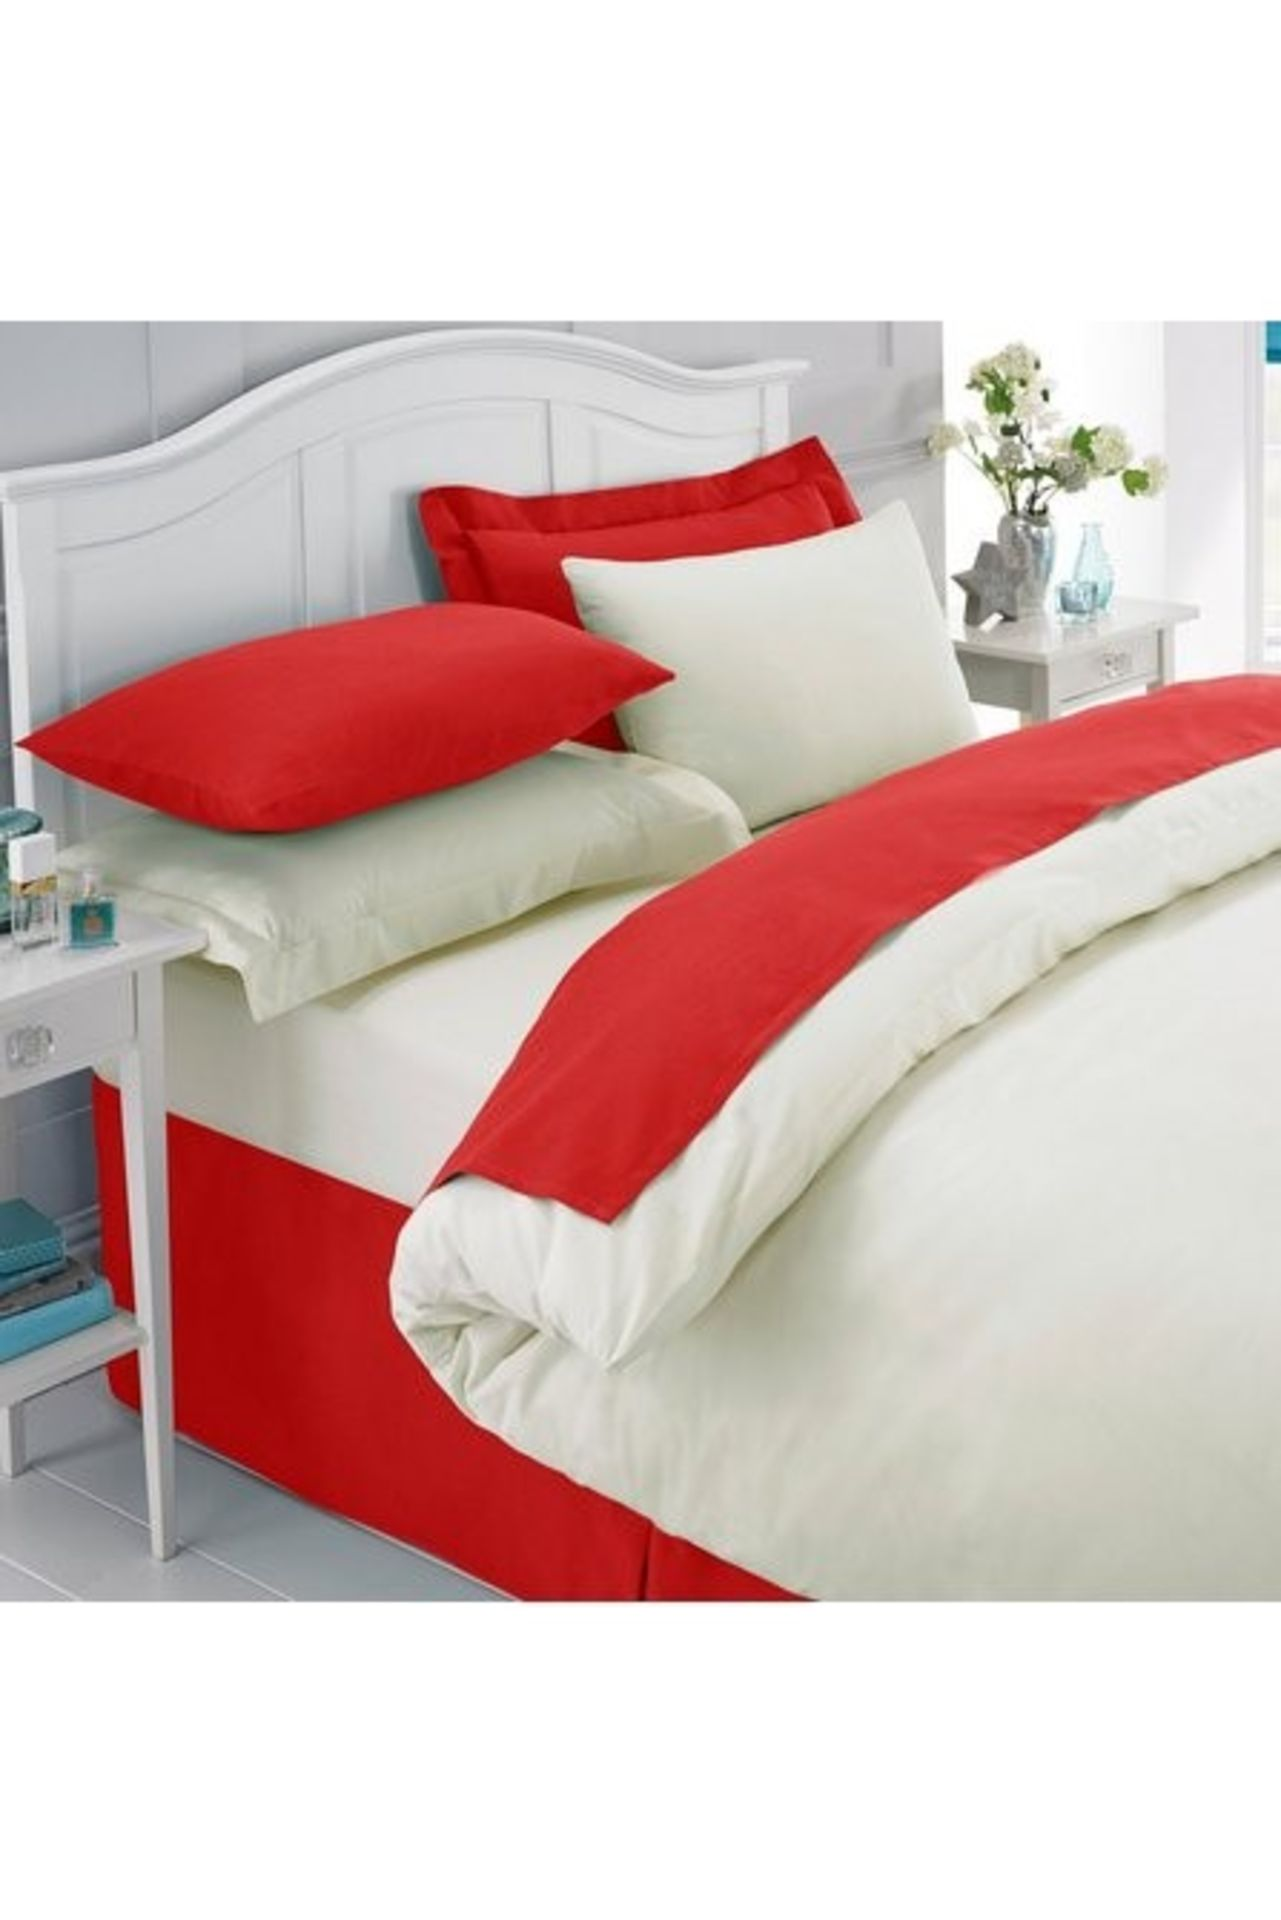 Lot 54 - 1 BAGGED PERCALE PLAIN DYED FLAT SHEET IN RED / RRP £33.49 (PUBLIC VIEWING AVAILABLE)